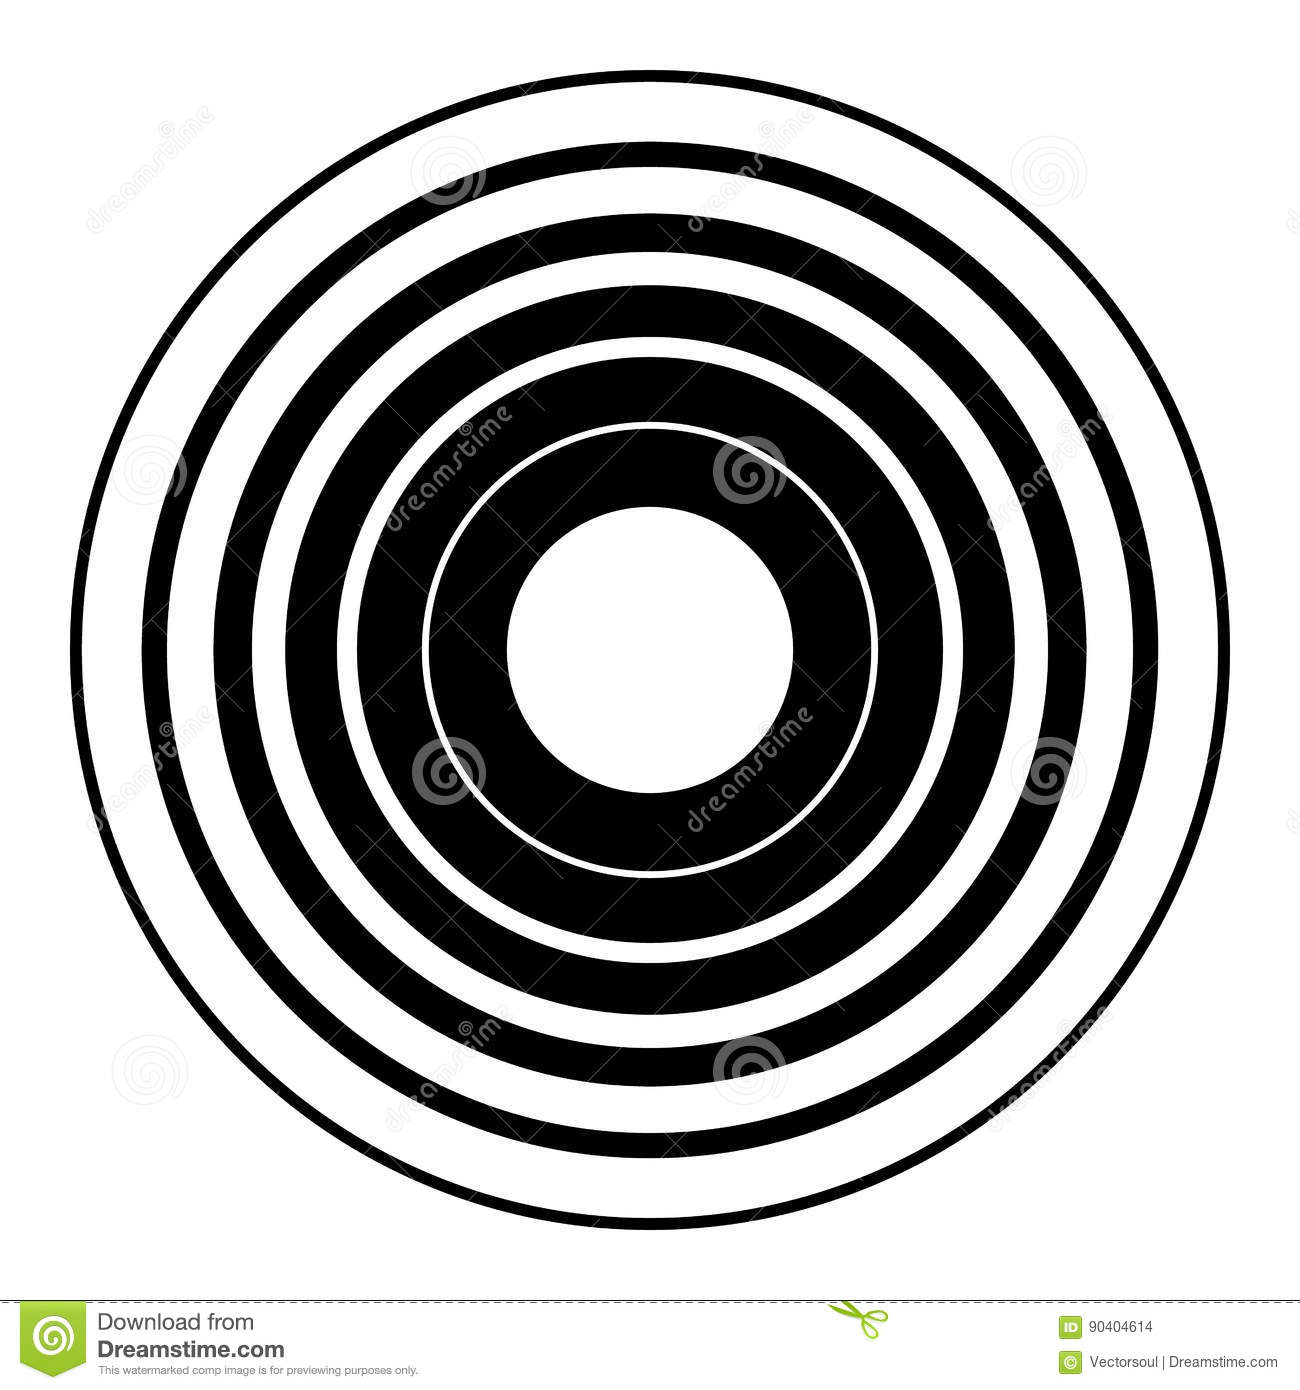 Concentric circles geometric element. Radial, radiating circular